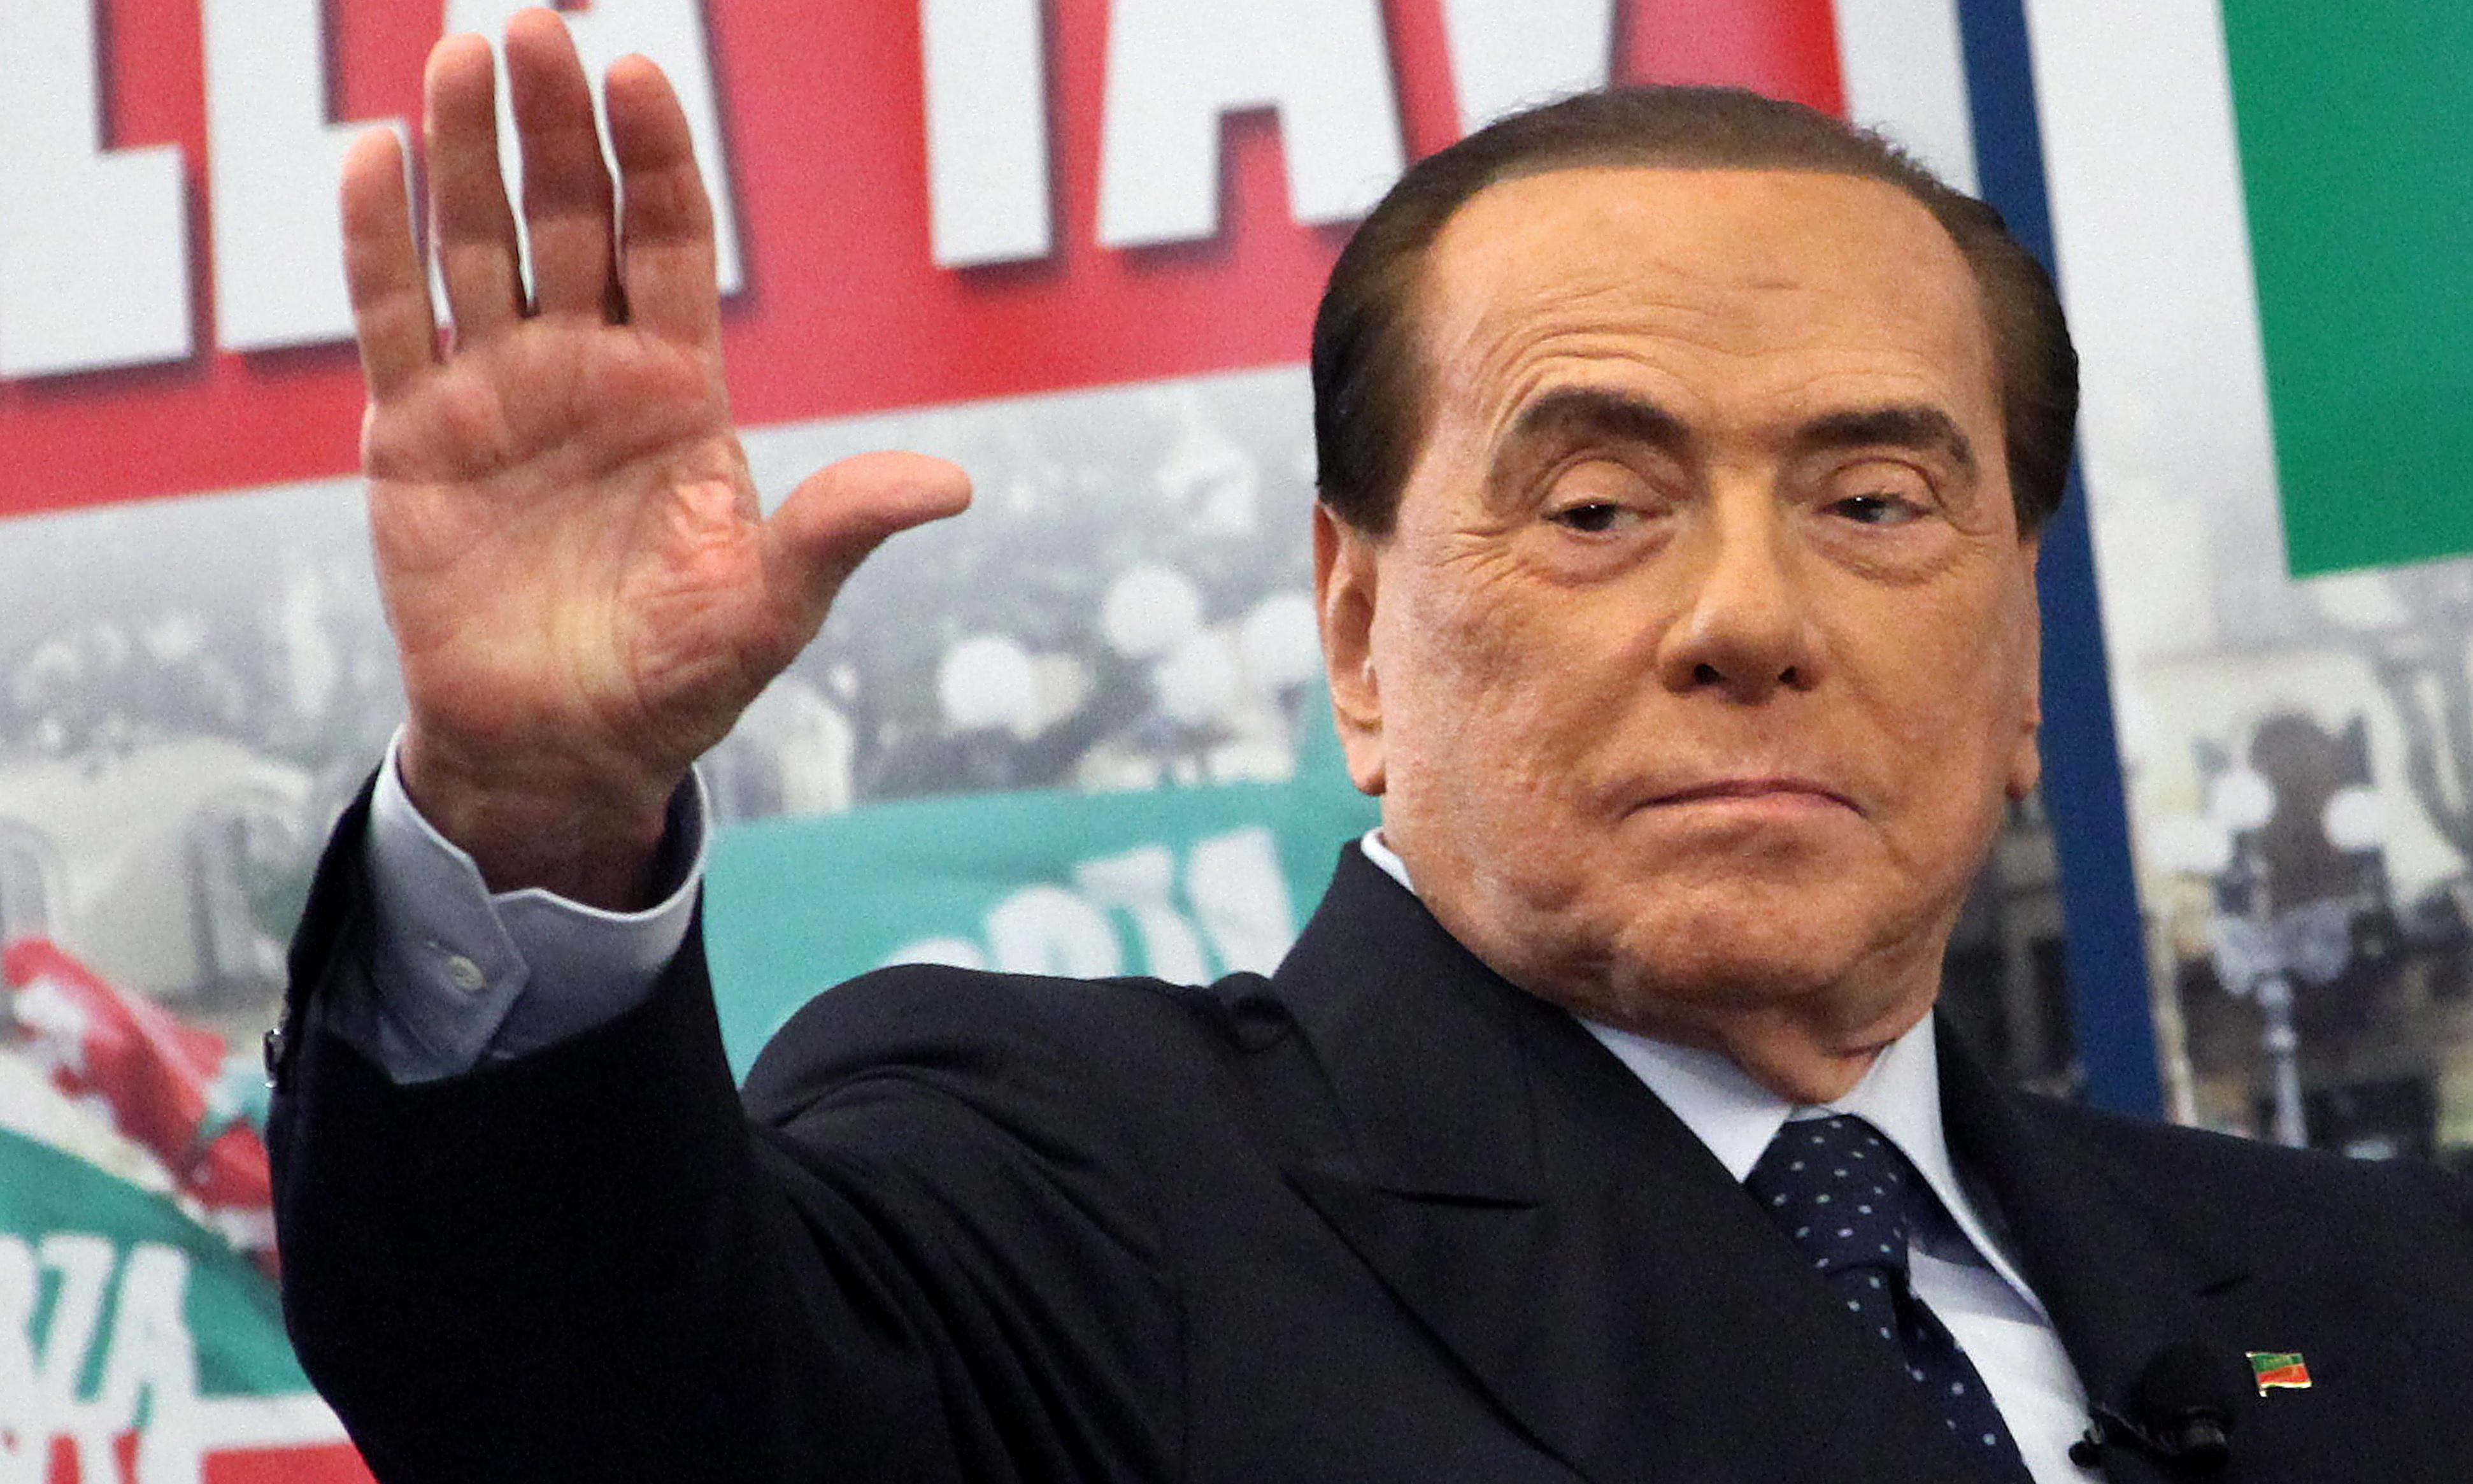 Silvio Berlusconi says he intends to stand for European parliament